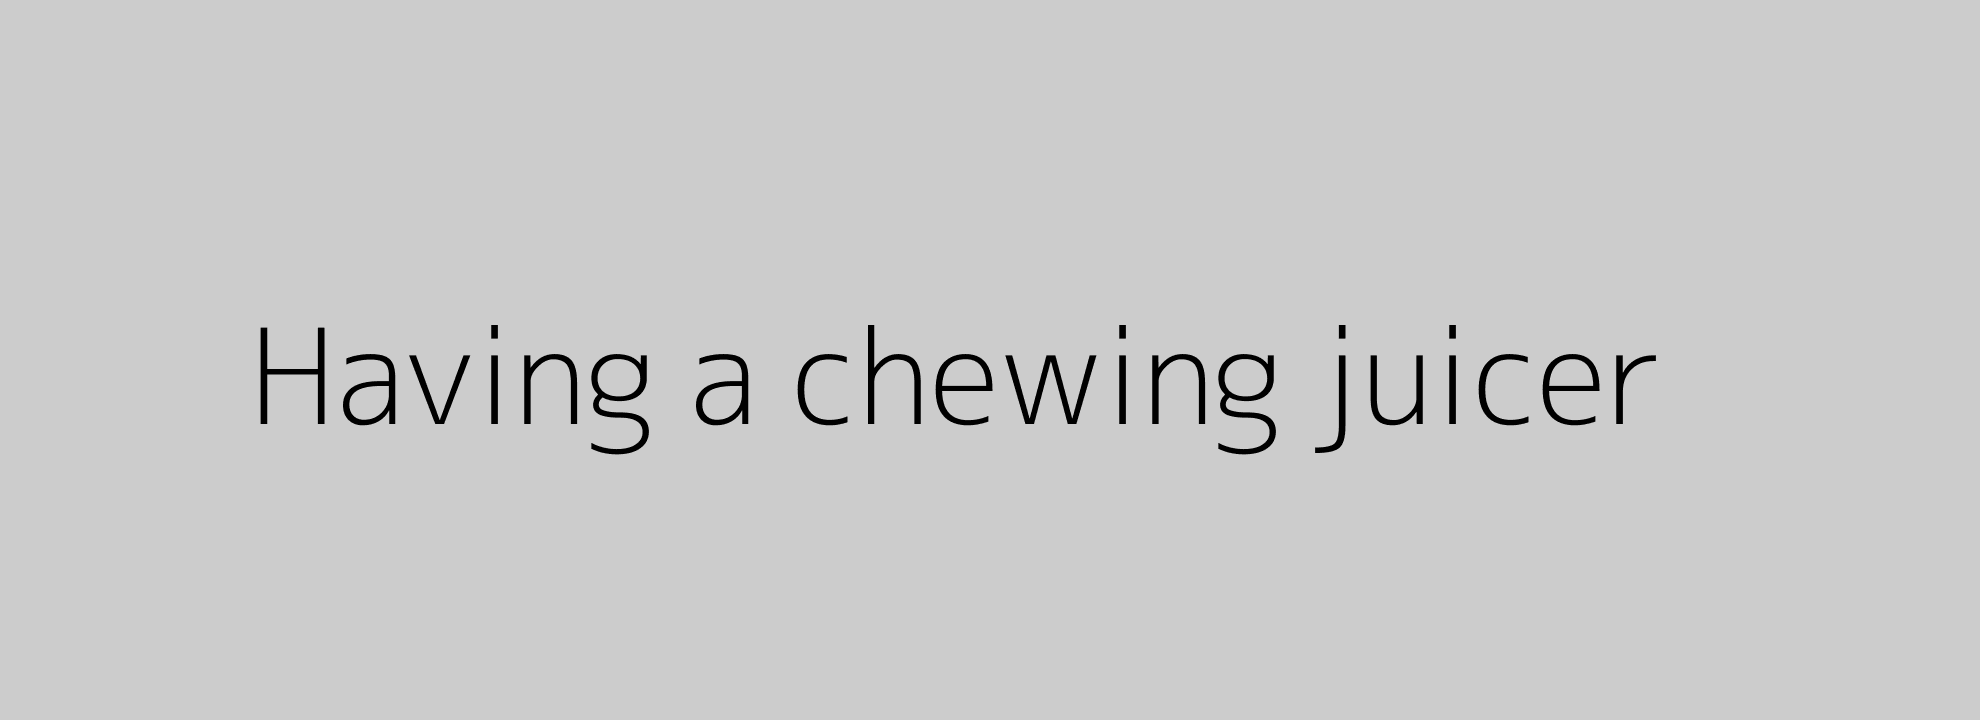 Having a chewing juicer